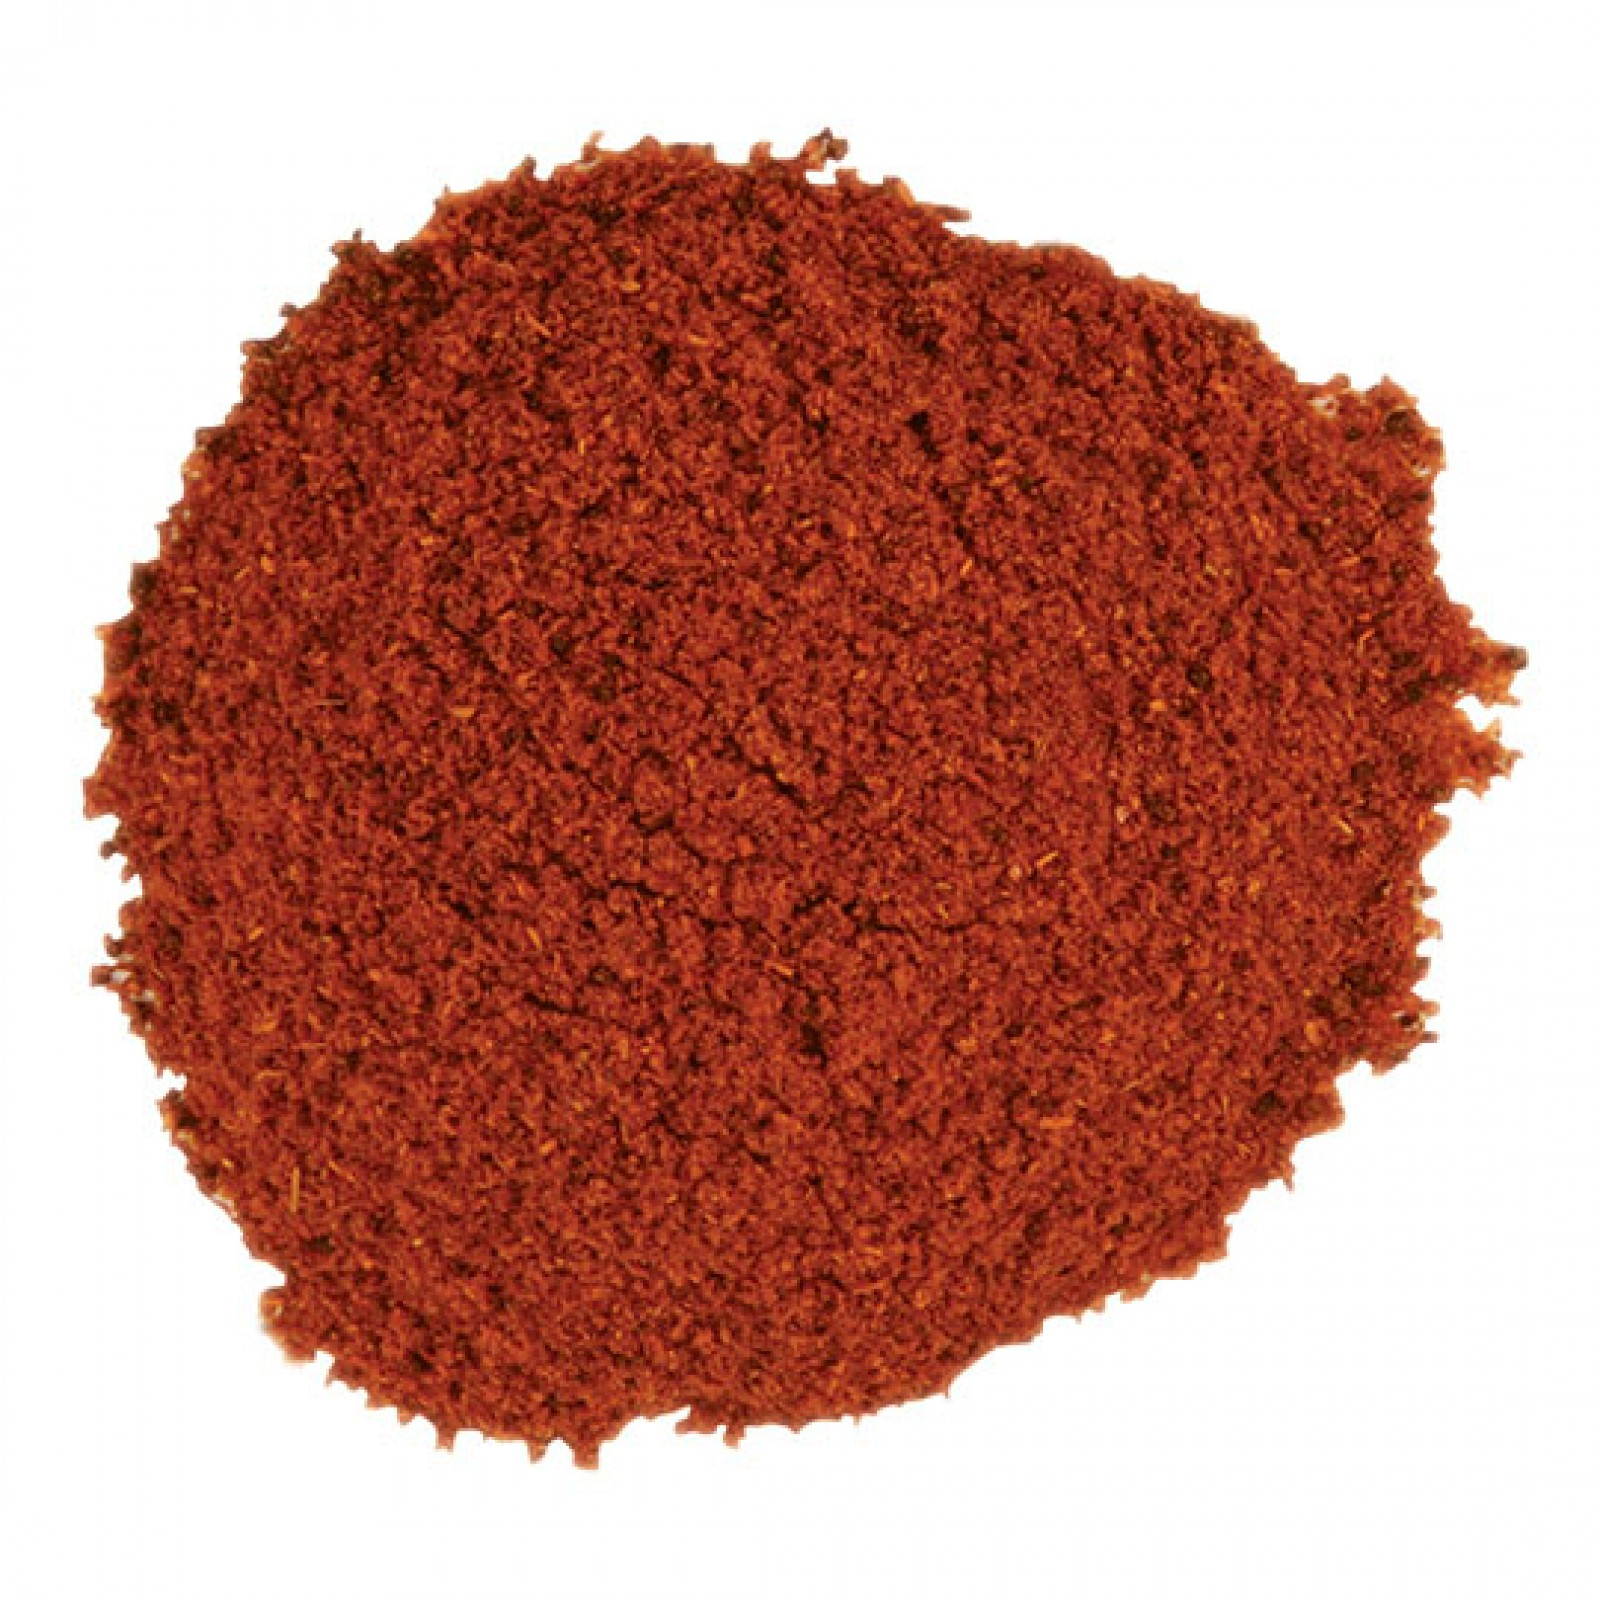 Spanish Red Paprika